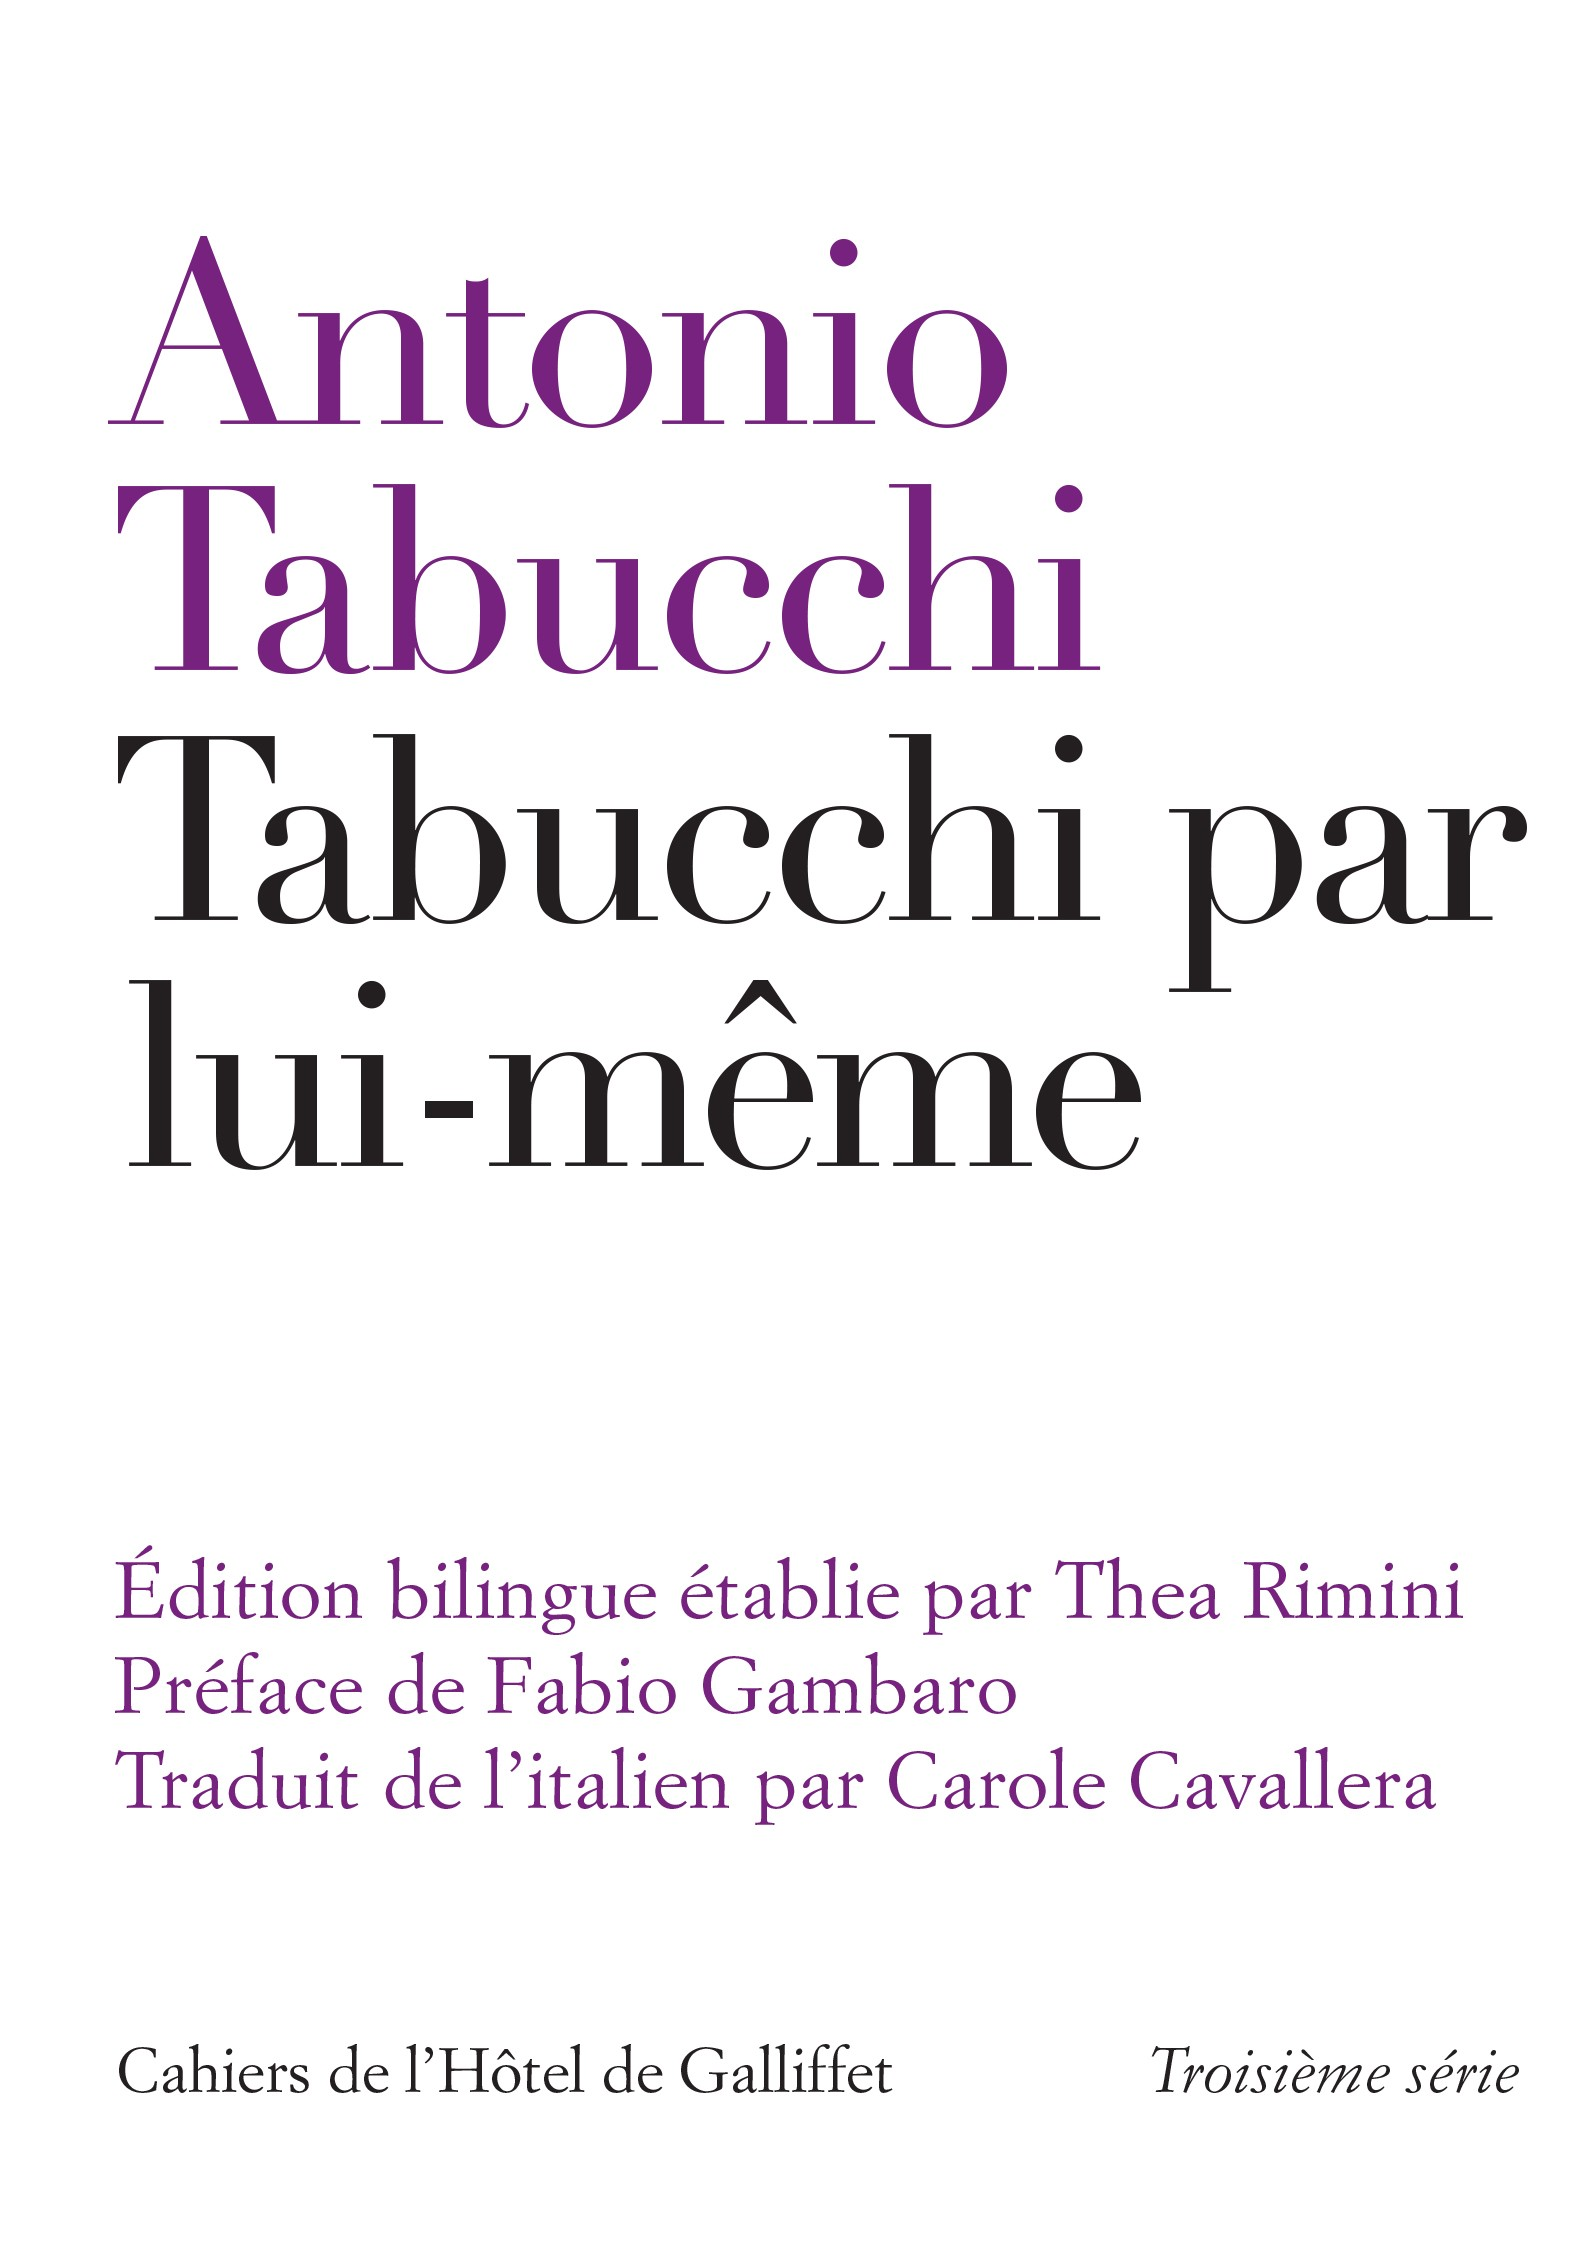 A Parisian book series dedicated to Italian literature